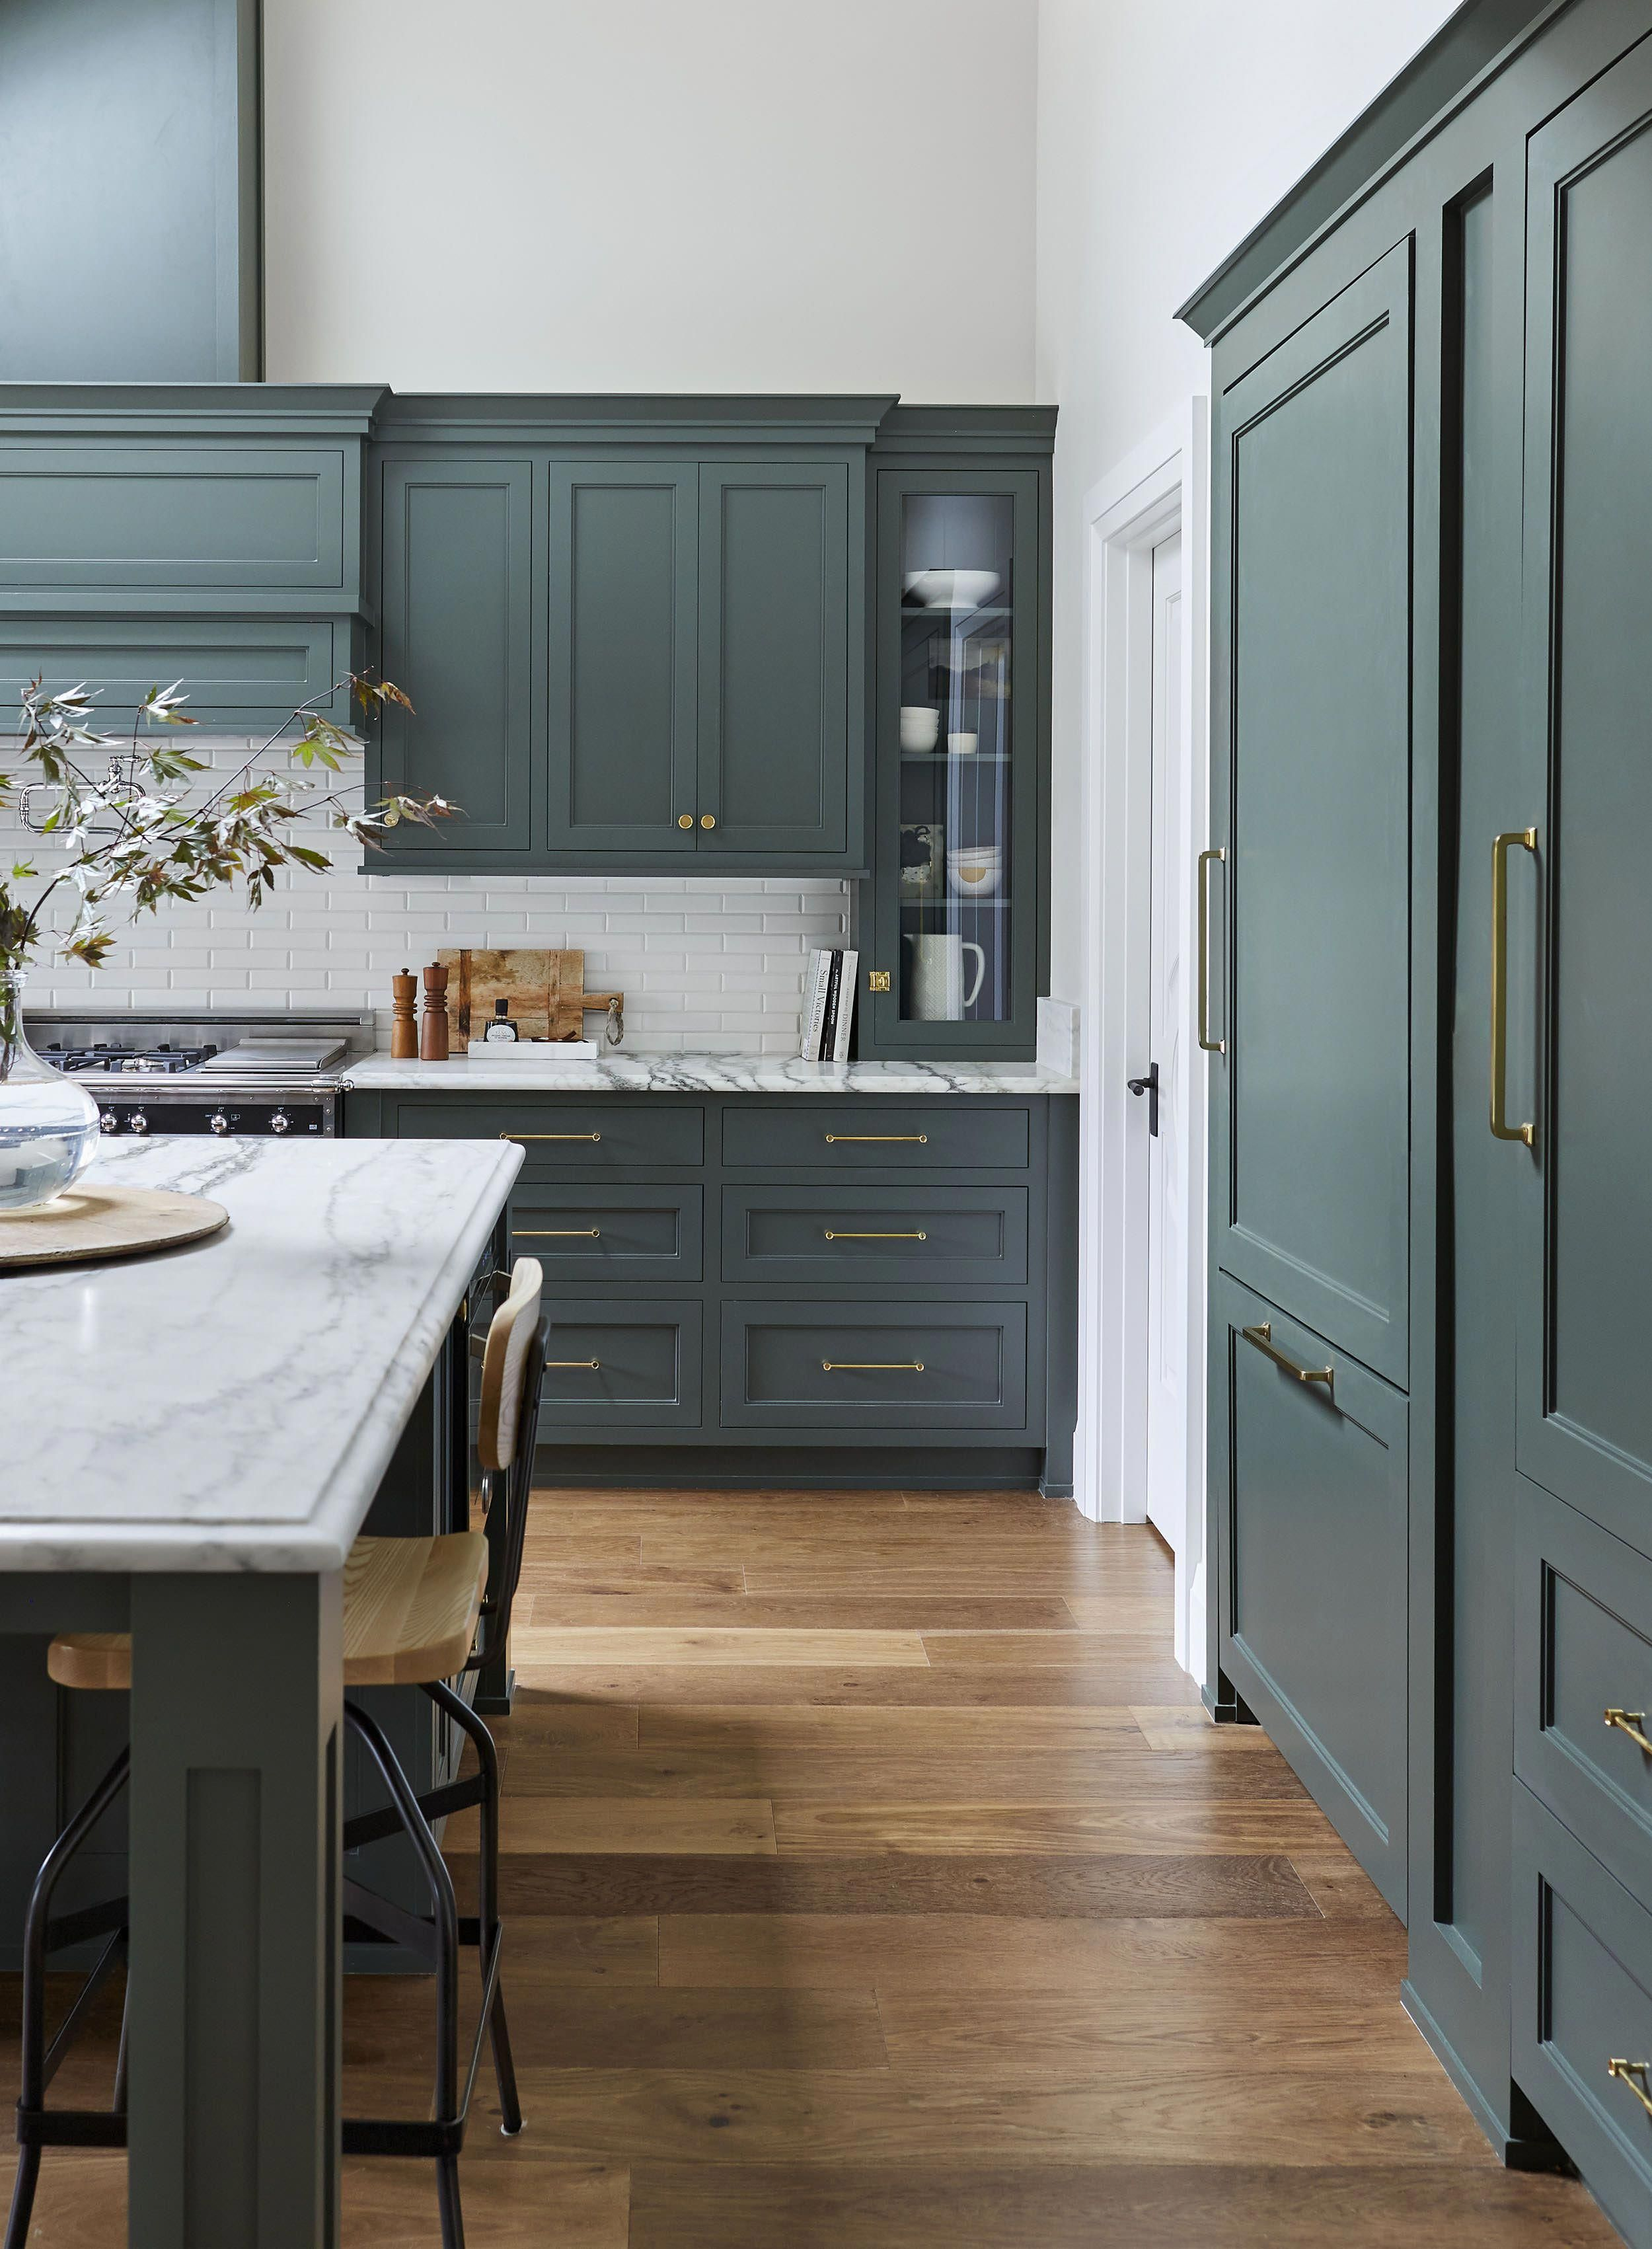 Kitchen Cabinet Paint Color Pewter Green Sherwin William S 6208 Emily Henders Green Kitchen Cabinets Painted Kitchen Cabinets Colors Interior Design Kitchen